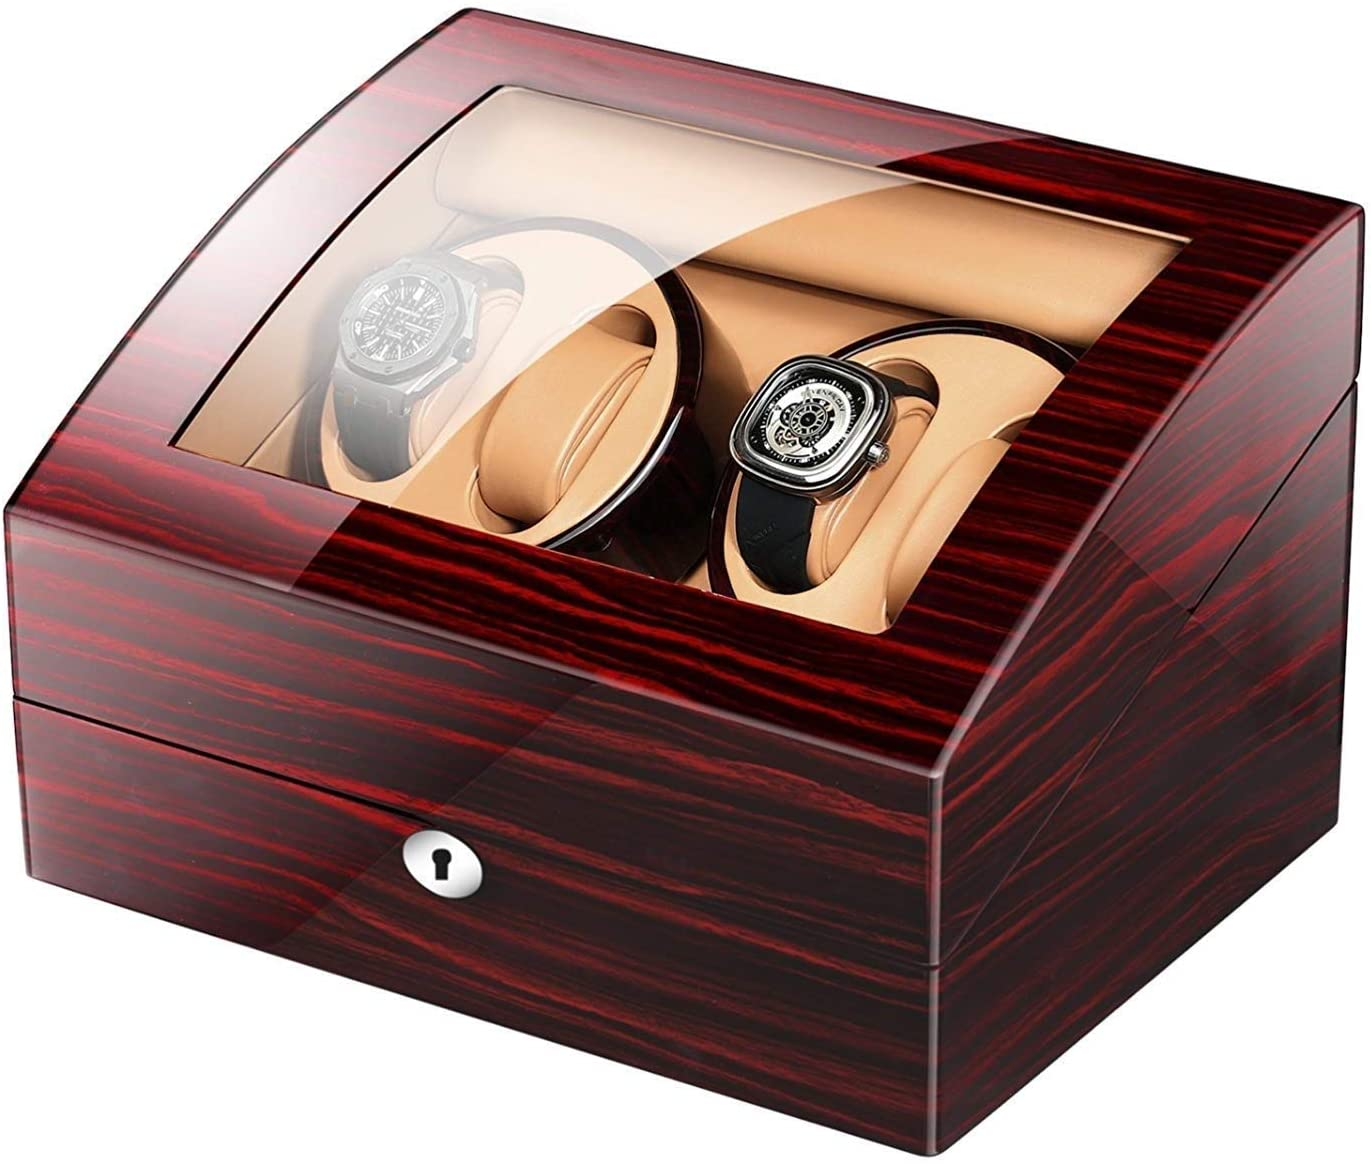 HYY-YY Automatic Watch Winder Box with 4 Winder Positions,4 Modes Wood Shell Piano Paint Black Gloss 6 Storage Spaces